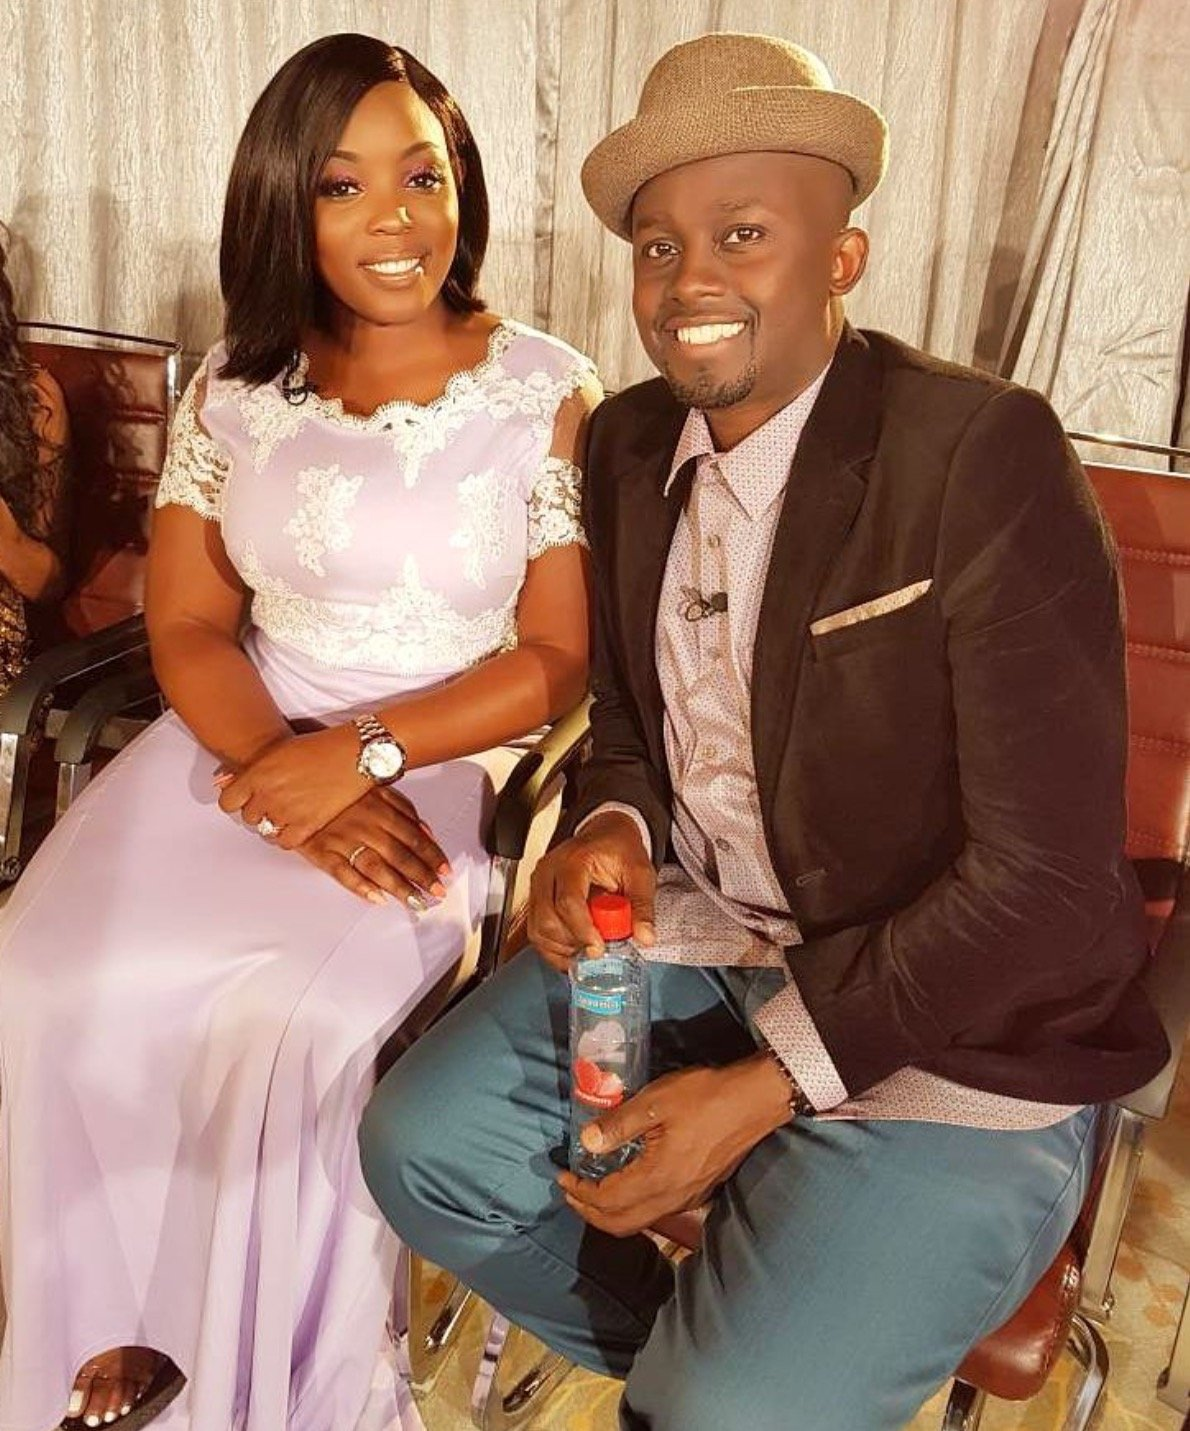 The incredible mega mansion Risper and her fiancé are planning to move into right after their wedding